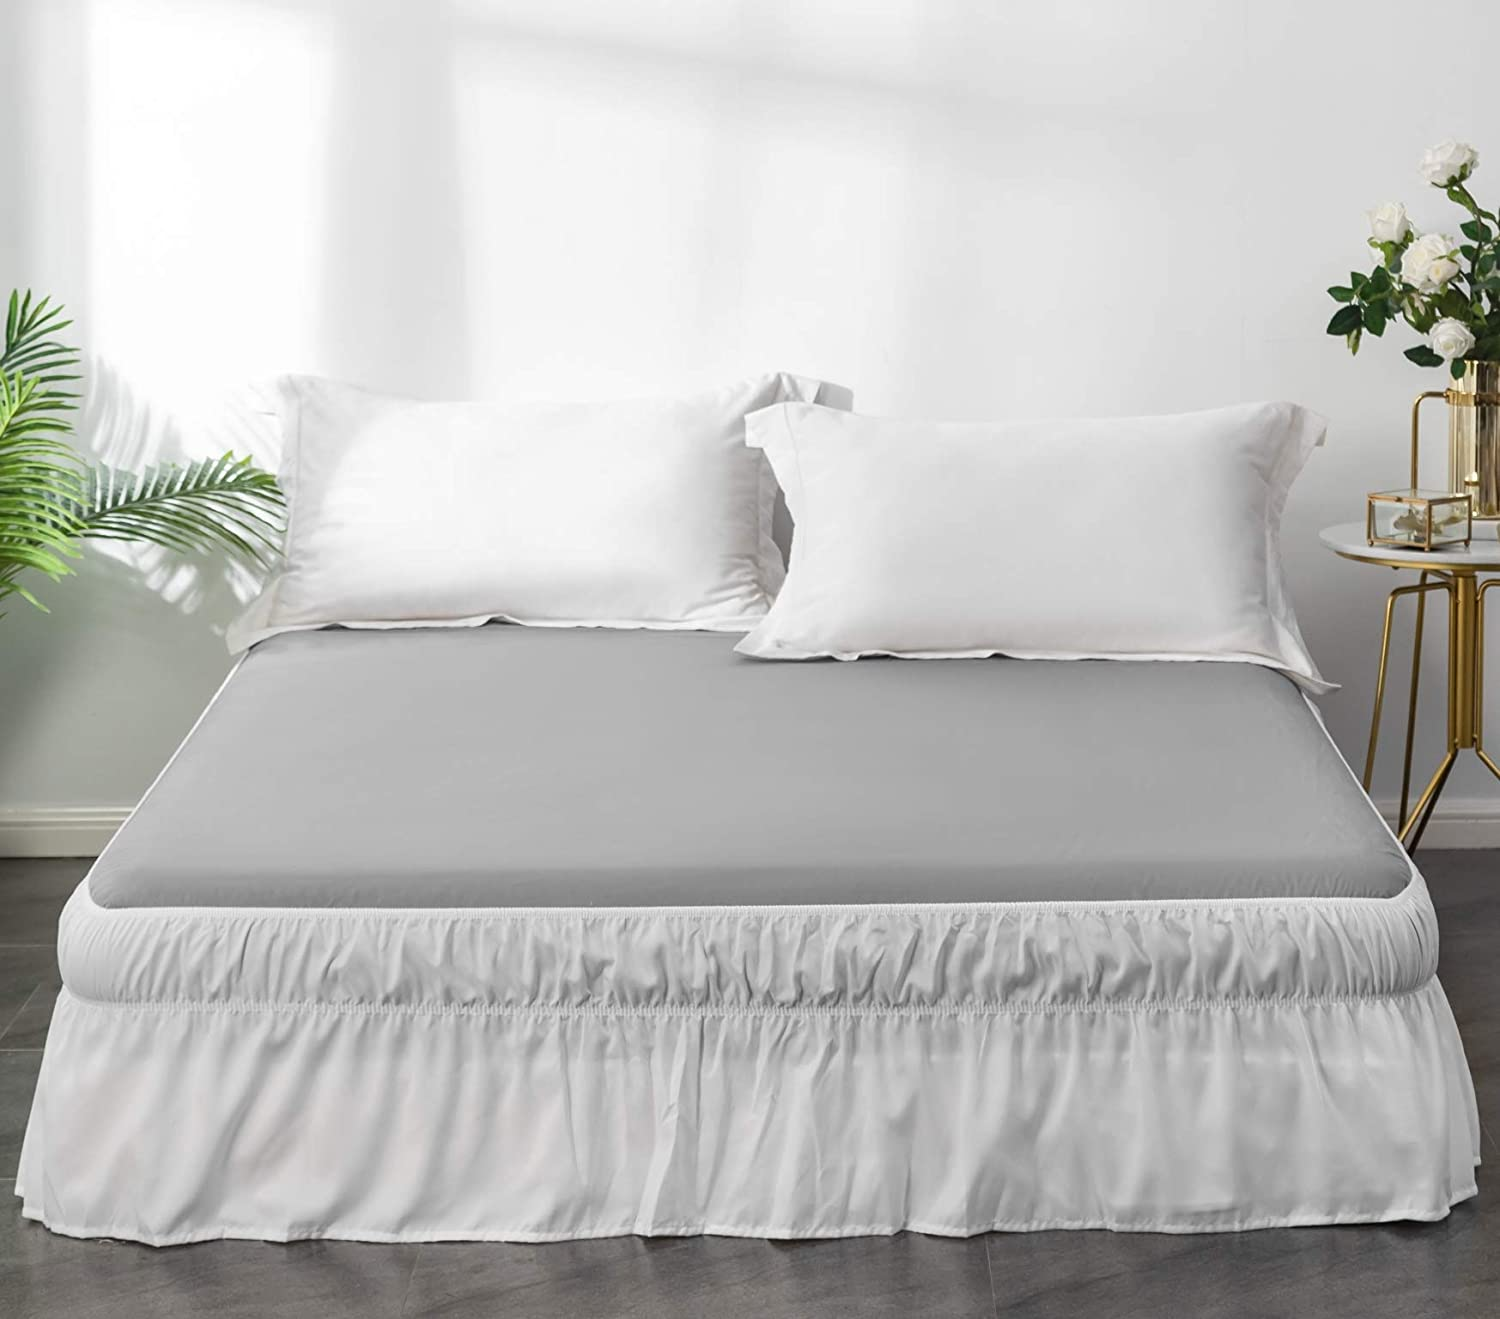 Ayasw Bed Skirt 15 16 Inch Drop Dust Ruffle Three Fabric Sides Wrap Around With Elastic No Top Easy On Queen King White Kitchen Dining Amazon Com